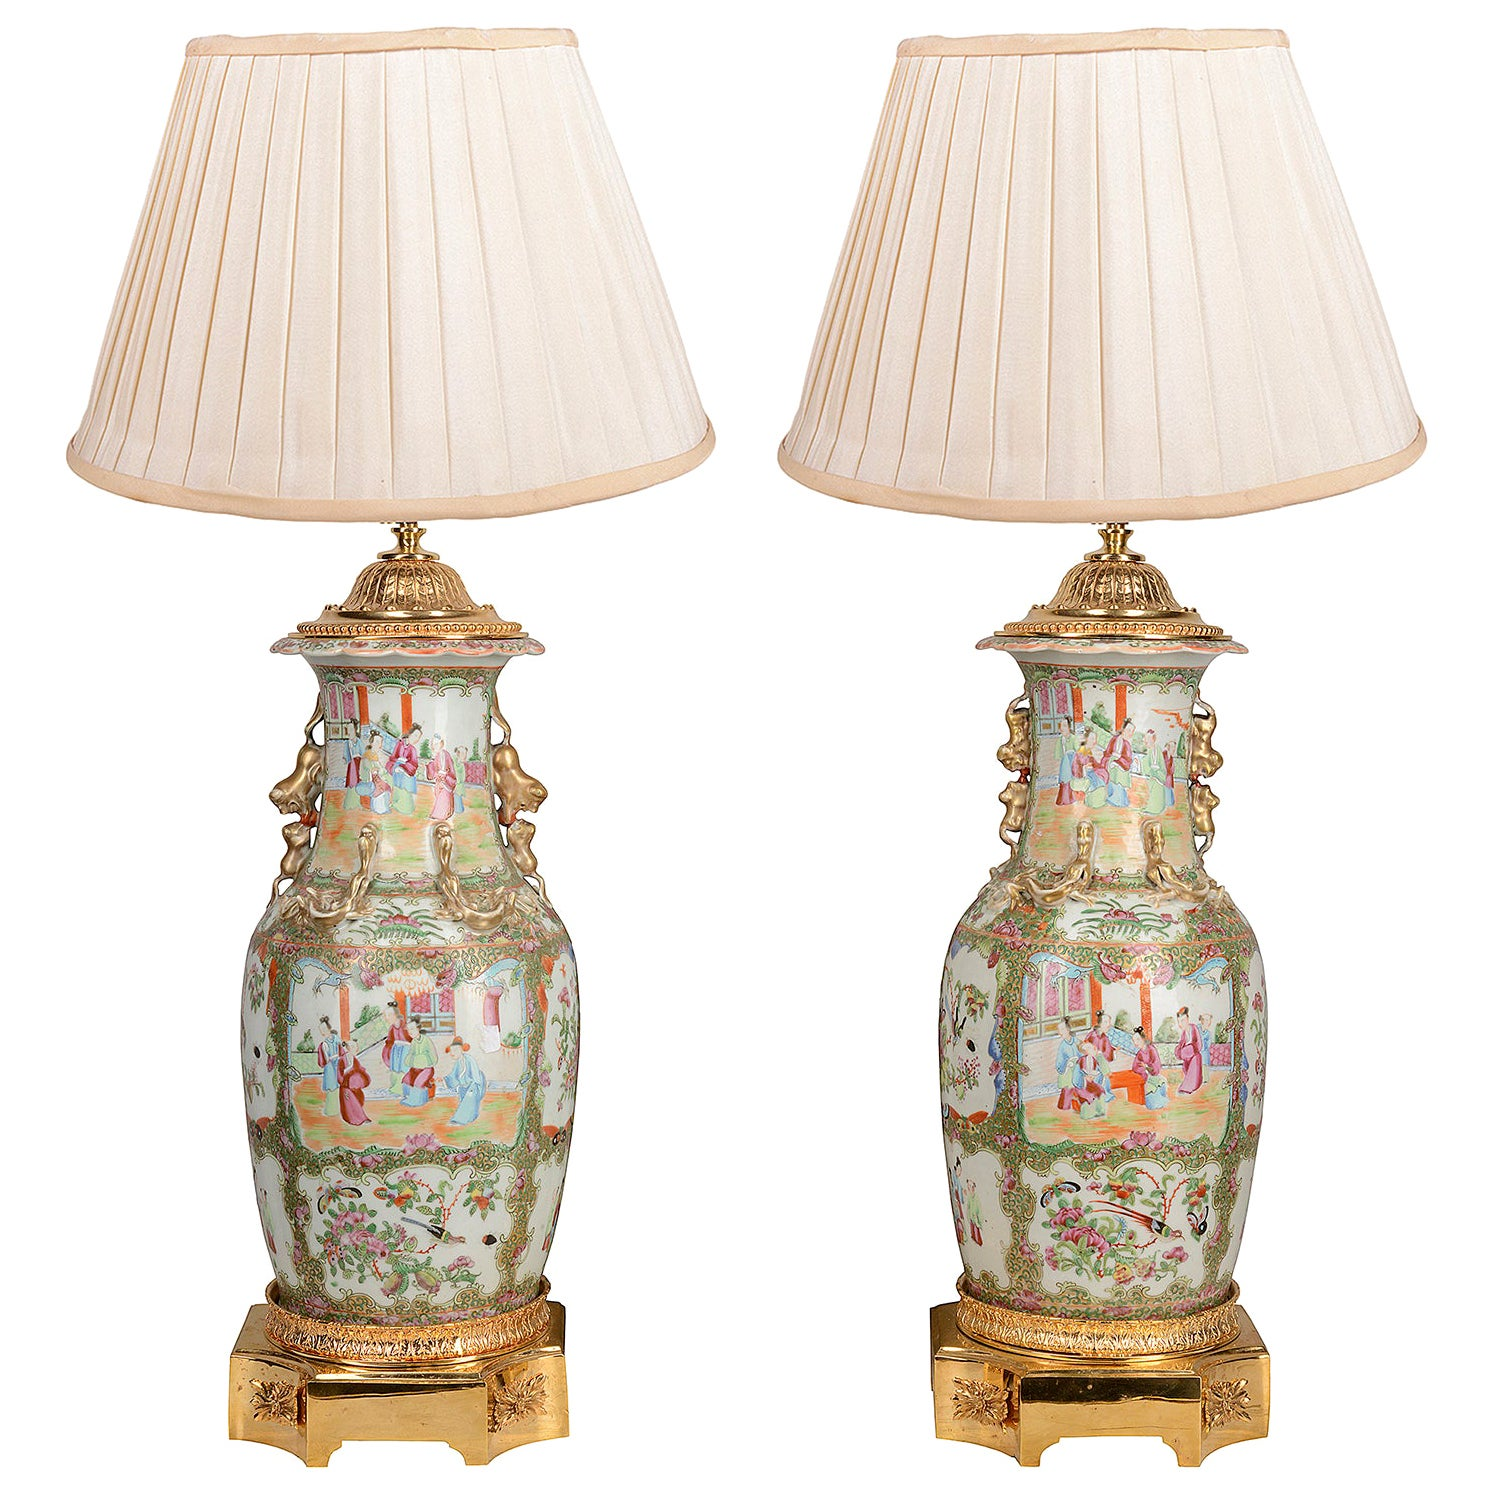 Pair of 19th Century Chinese Cantonese / Rose Medallion Vases/ Lamps